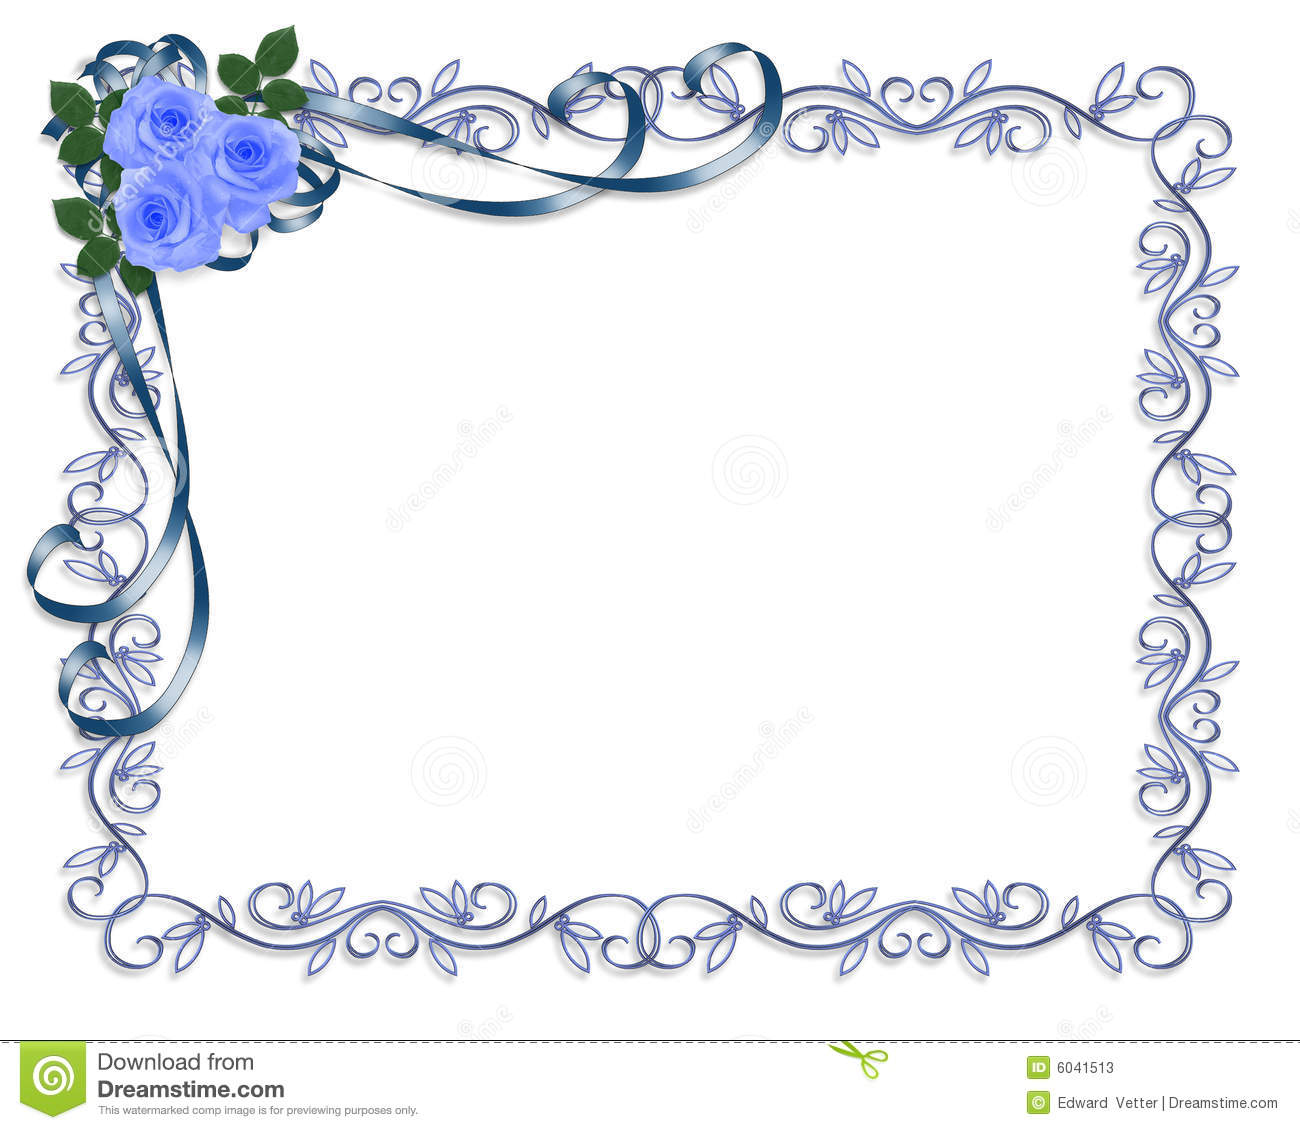 Wedding Invite Borders: Blue Roses Wedding Invitation Border Stock Illustration